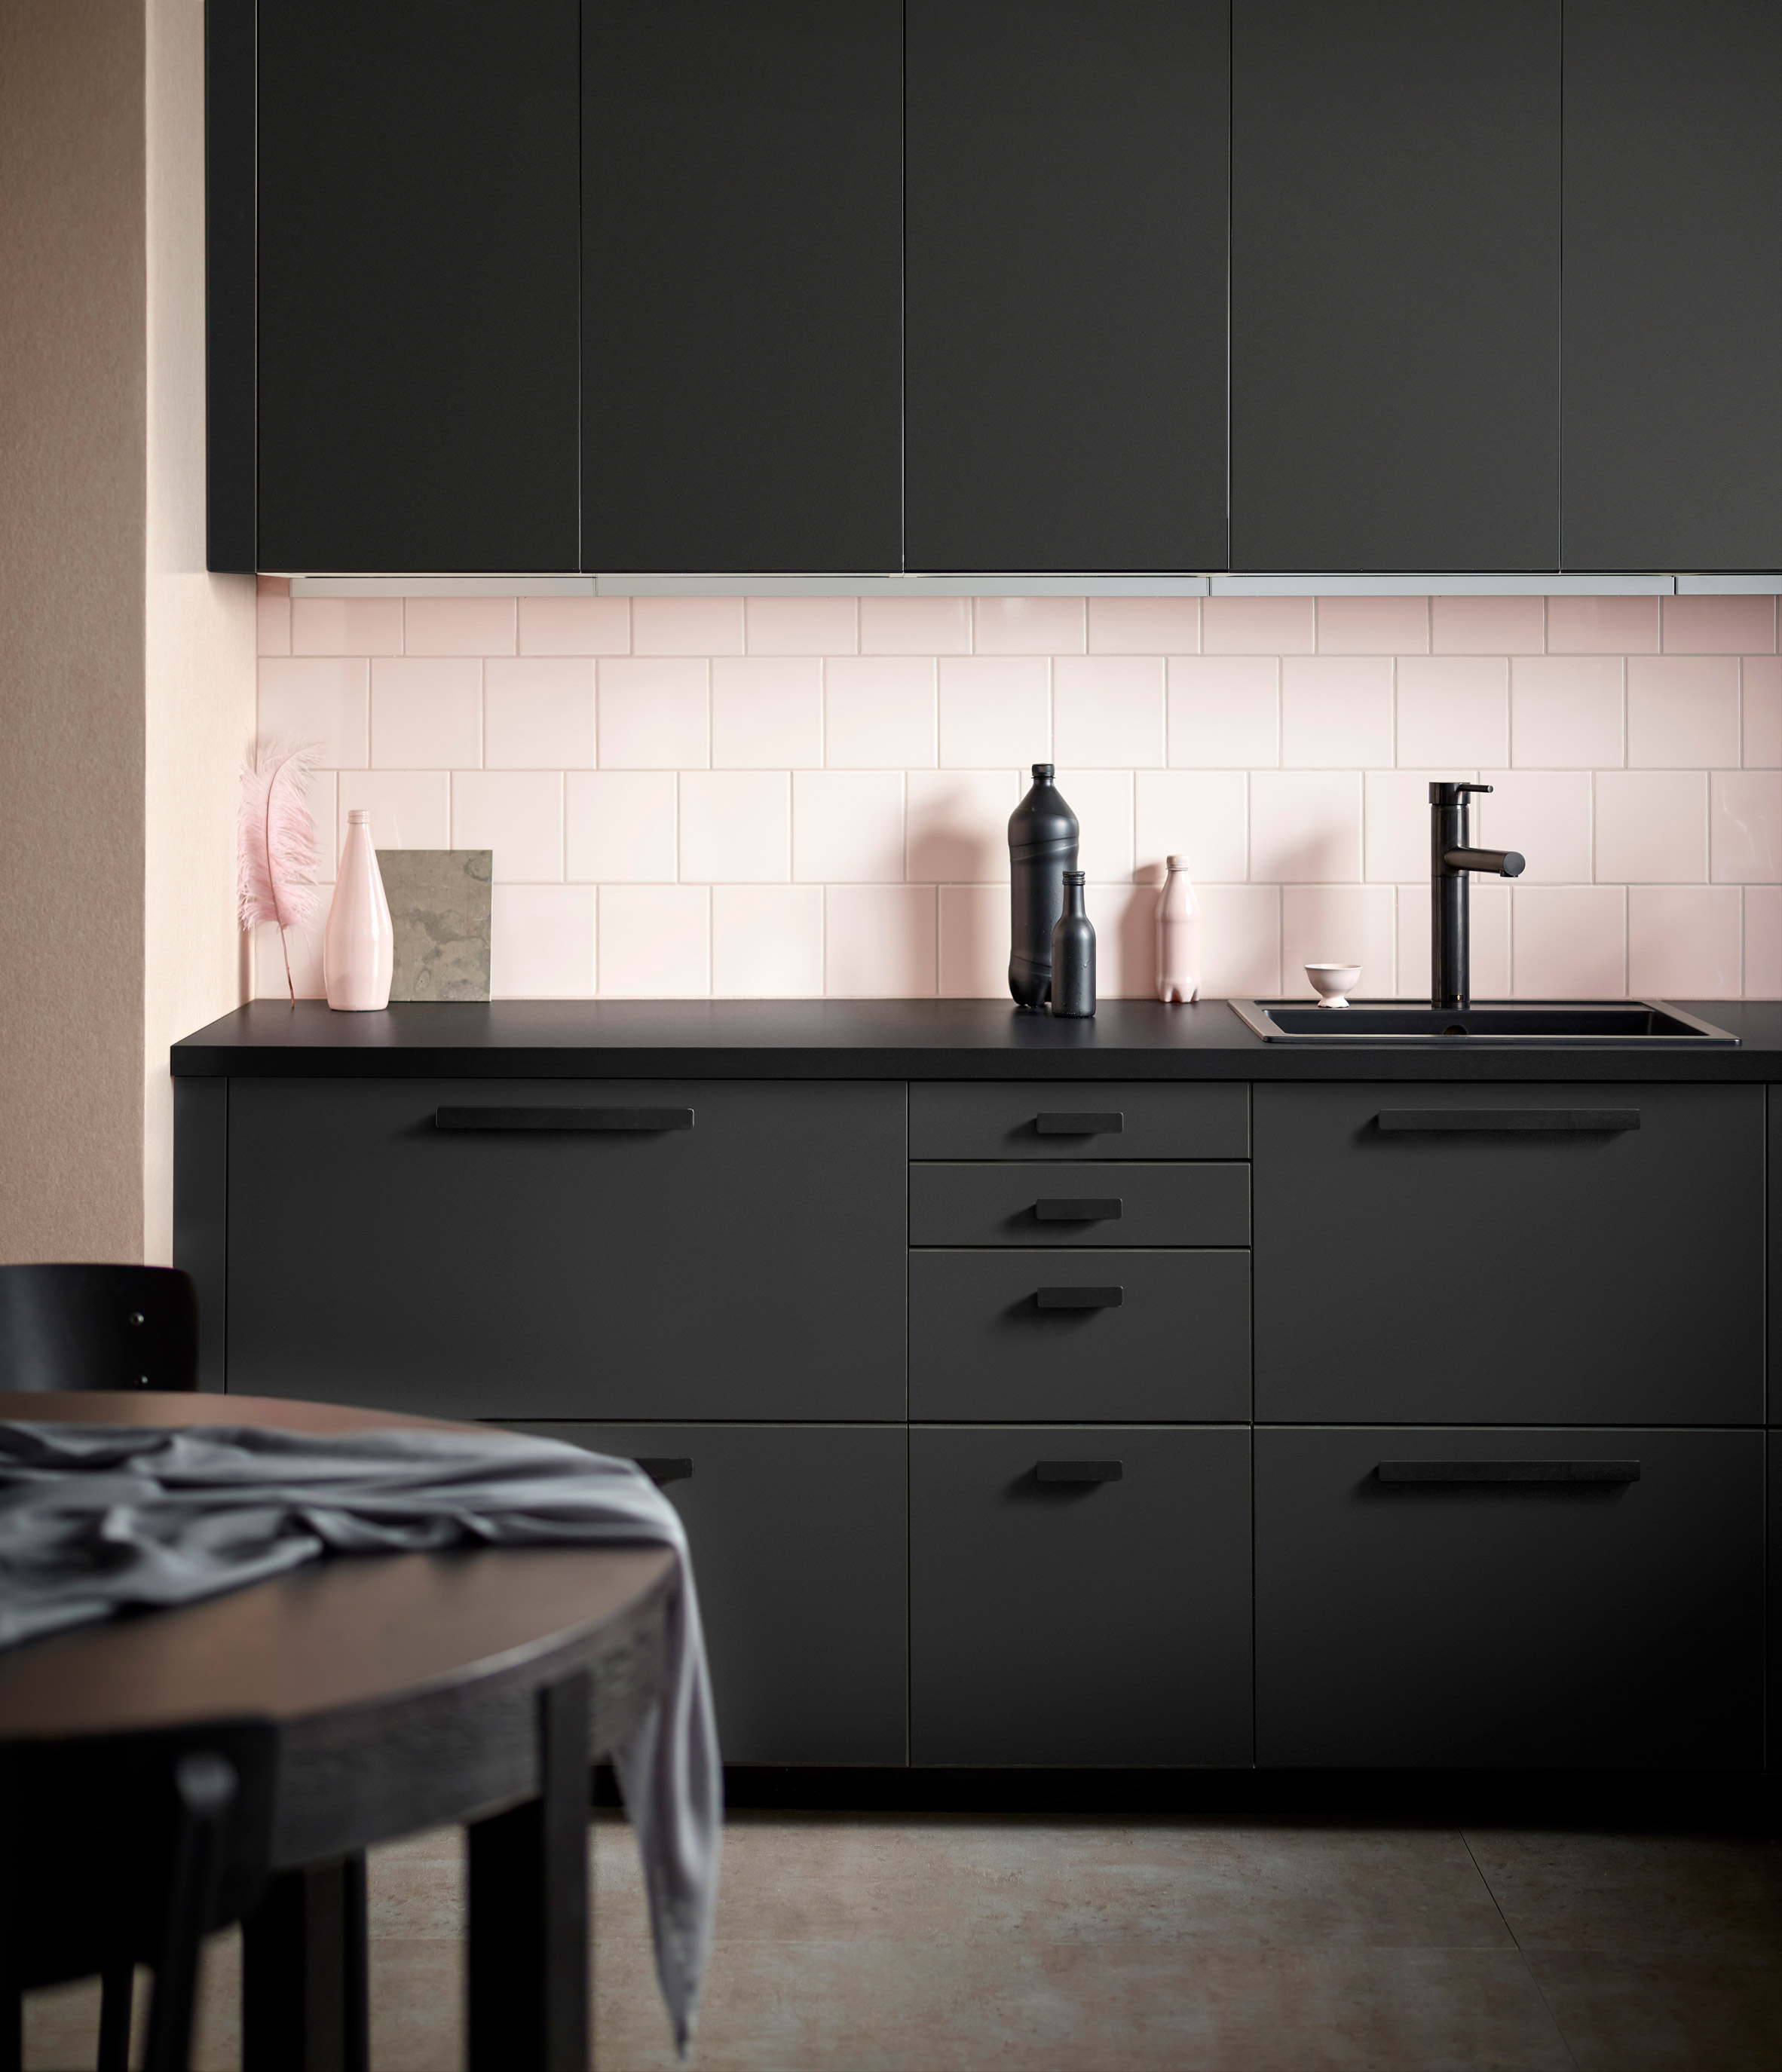 Ikea s new kitchen system is made from plastic bottles curbed - Decoration cuisine ikea ...